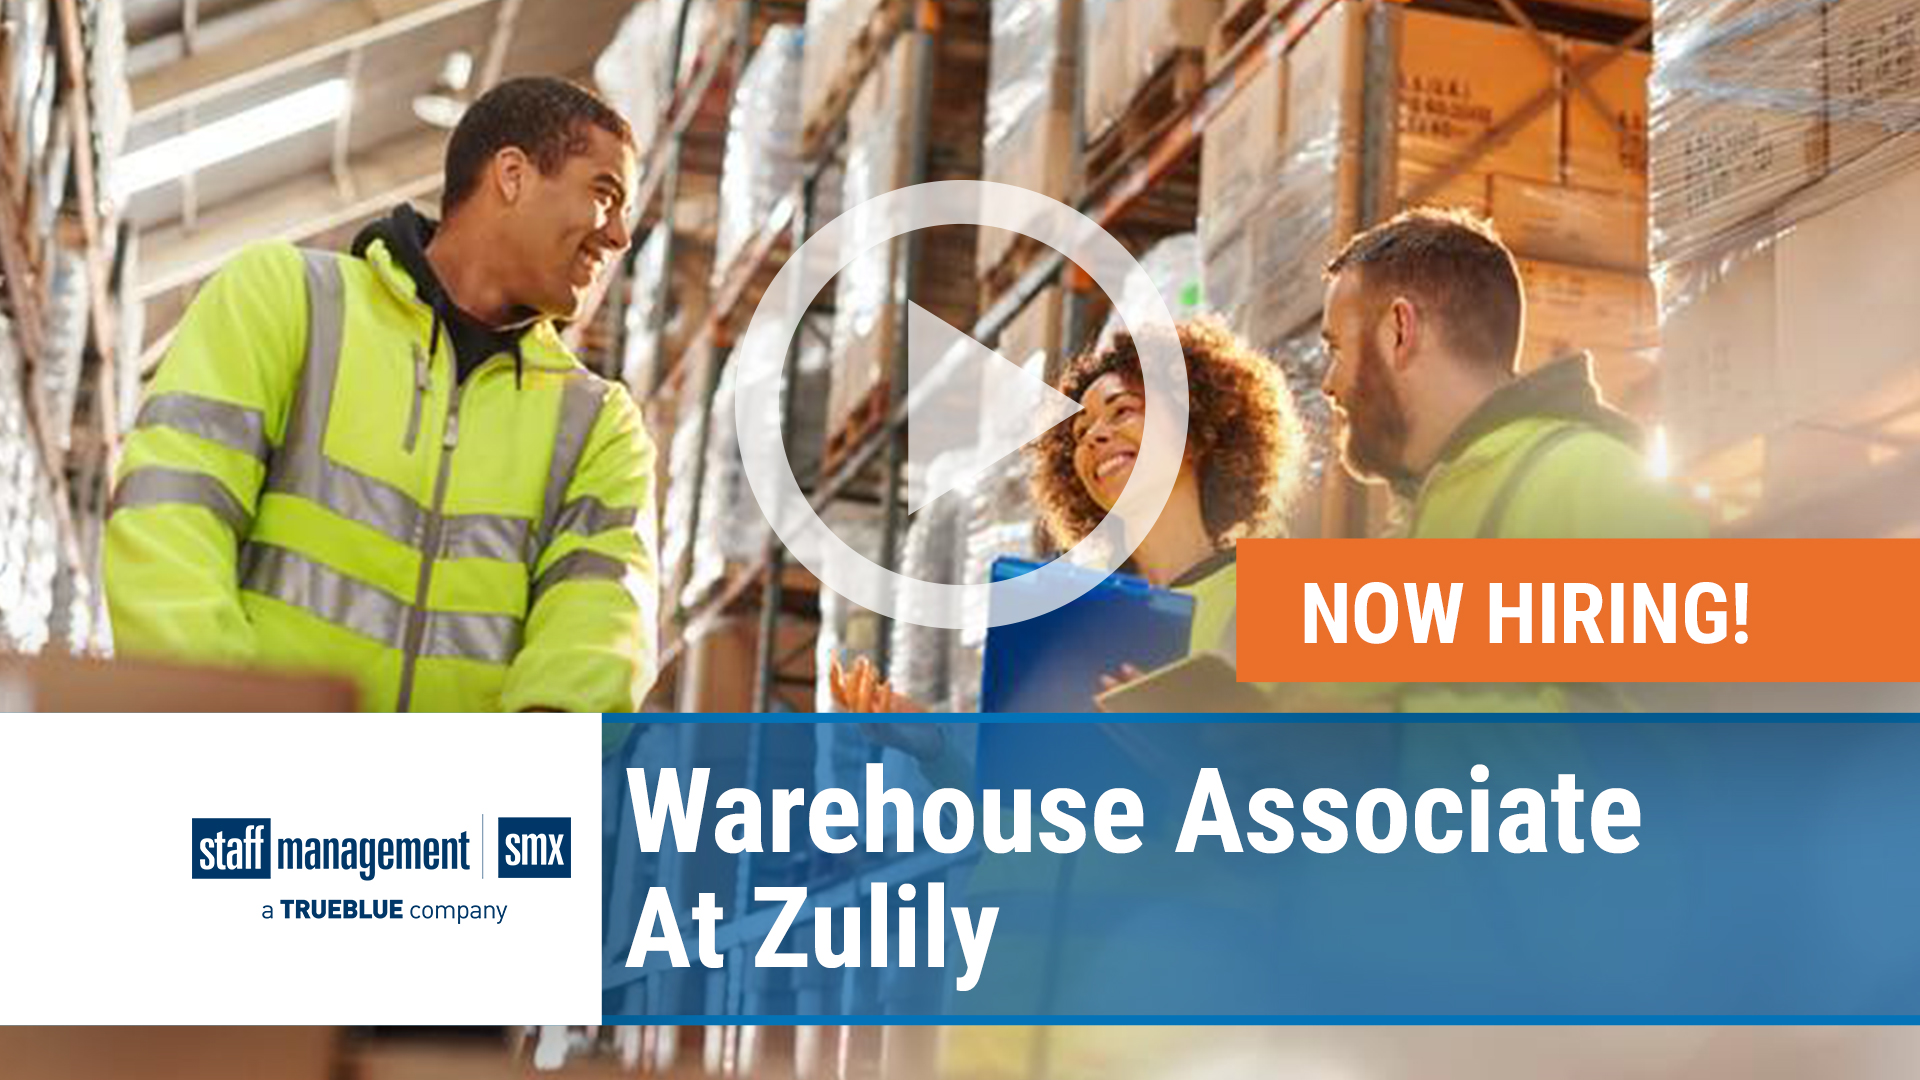 Watch our careers video for available job opening SMX Warehouse Associate at Zulily in USA